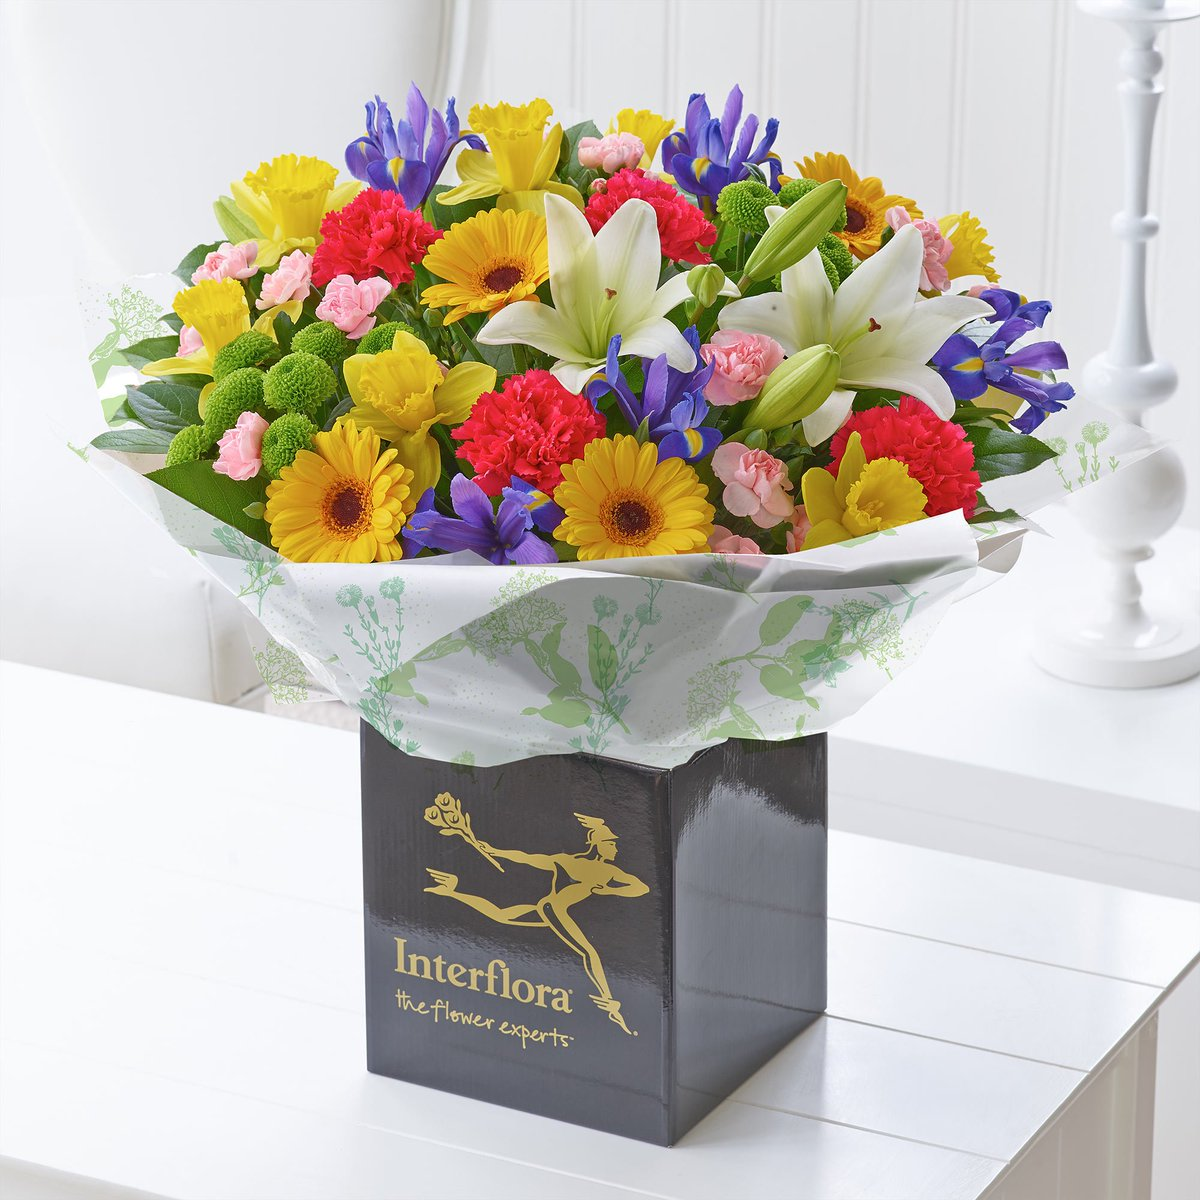 Interflora on twitter our bouquet of the month is full of the joys interflora on twitter our bouquet of the month is full of the joys of spring rt if youd love to open your door to this delivery mightylinksfo